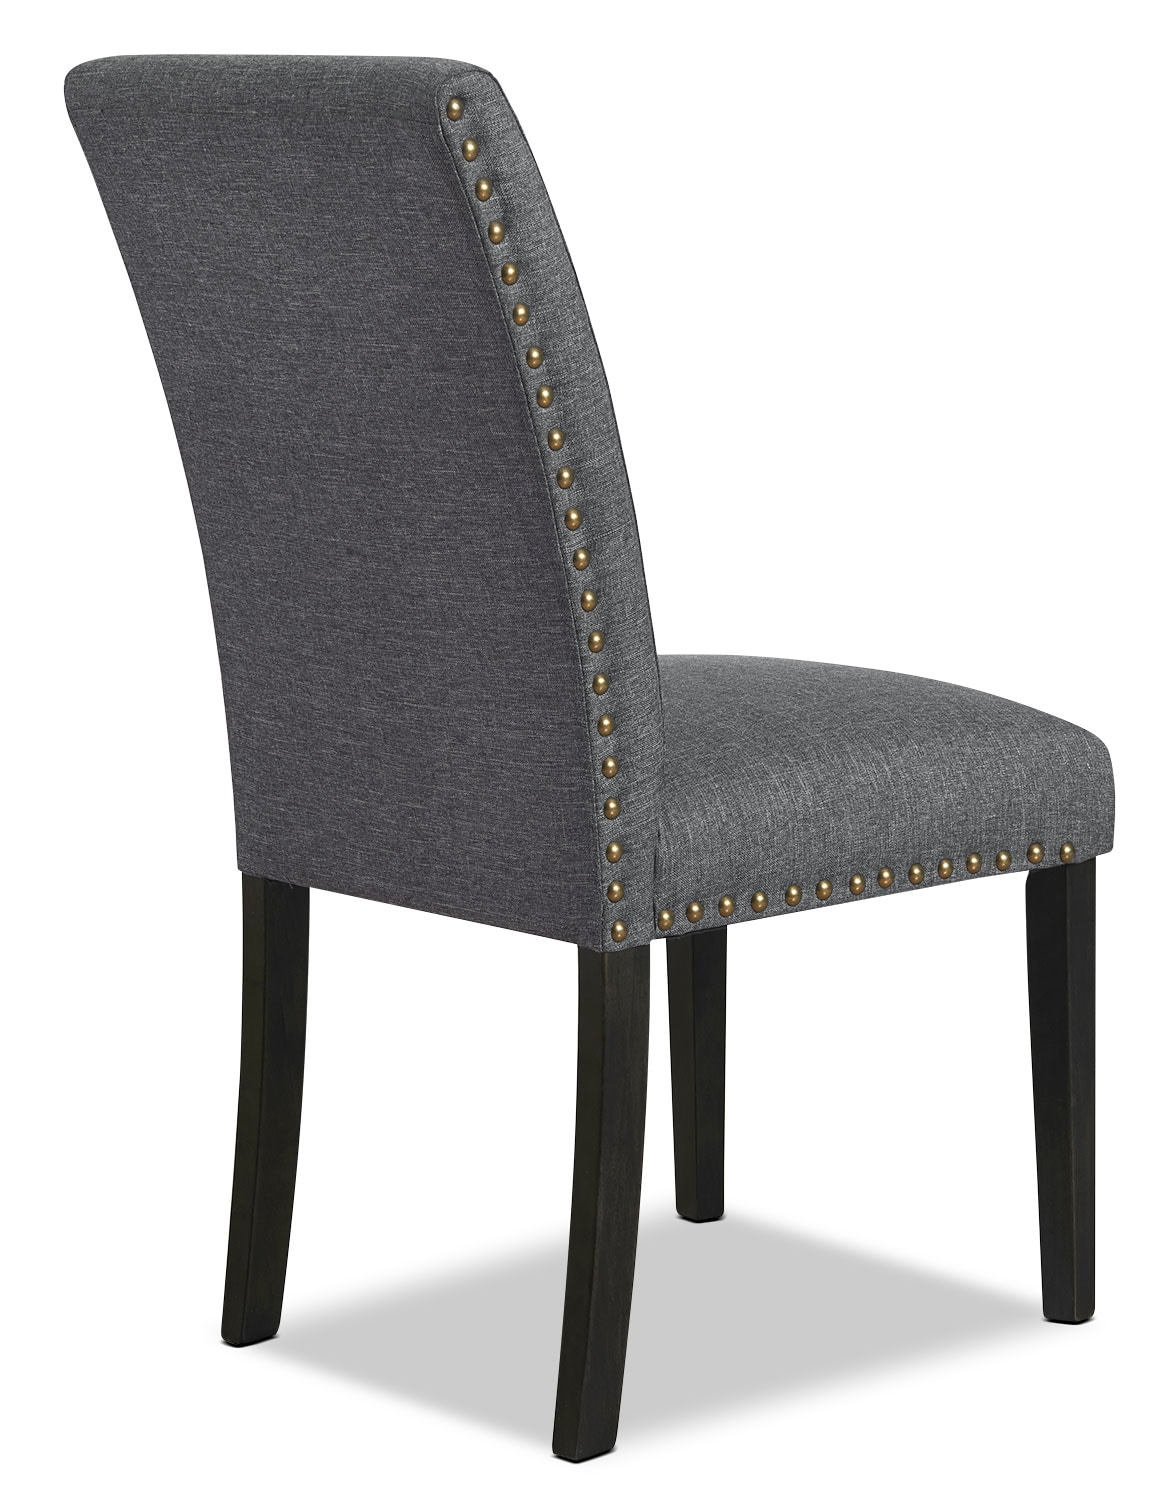 studded dining room chairs optic nadeshot gaming chair york set of 2  grey the brick